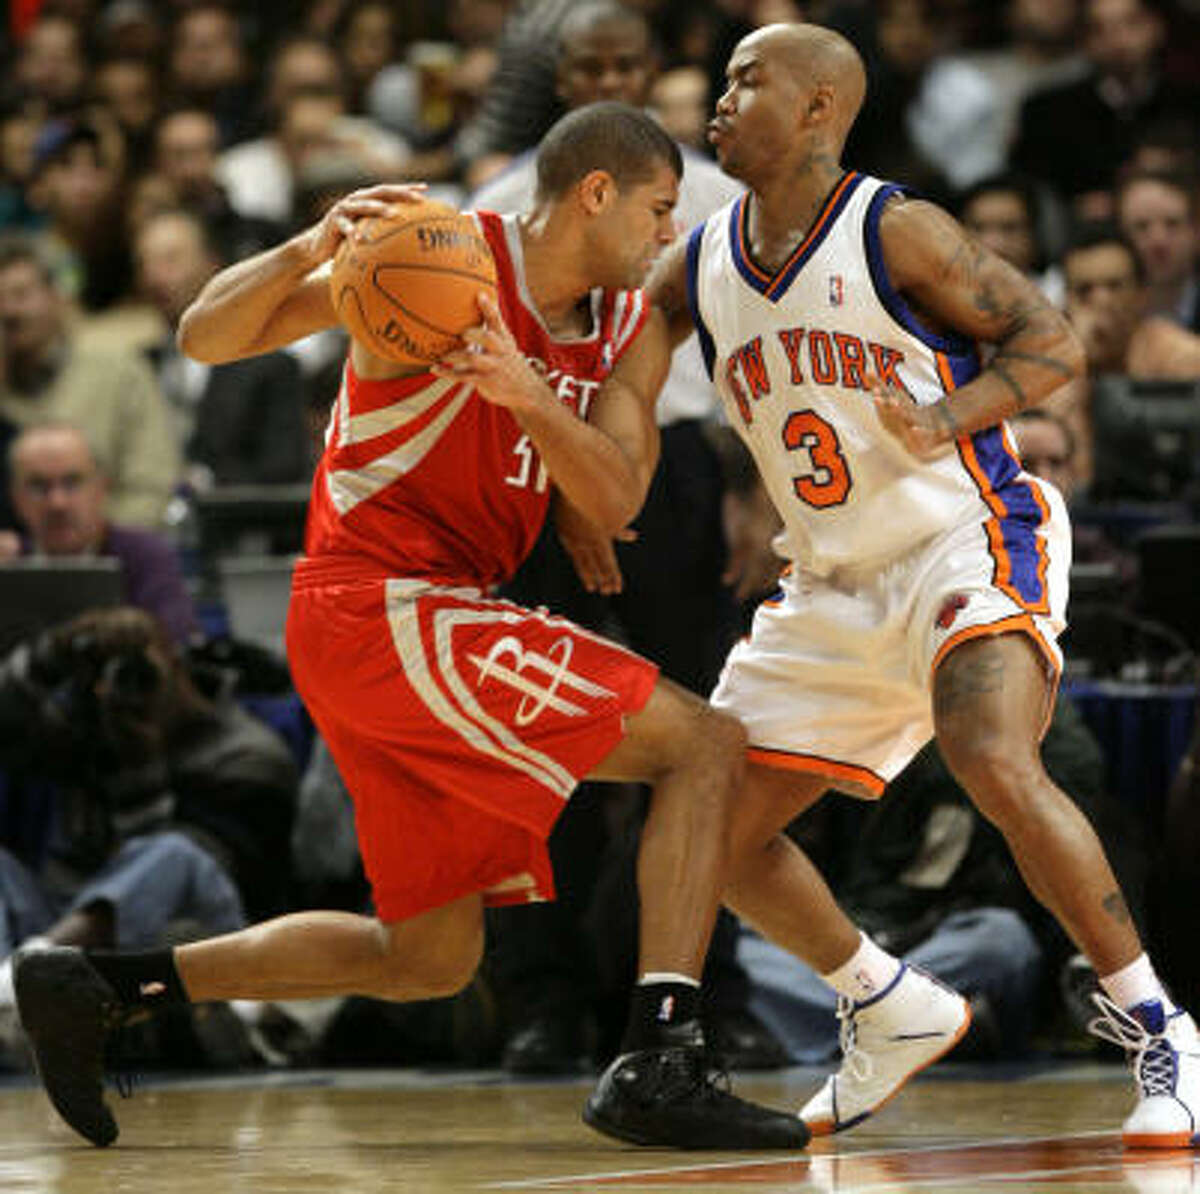 Stephon Marbury (3) slows down Shane Battier of the Rockets. Marbury and former Rockets guard Steve Francis each saw less than 20 minutes of action for the Knicks.